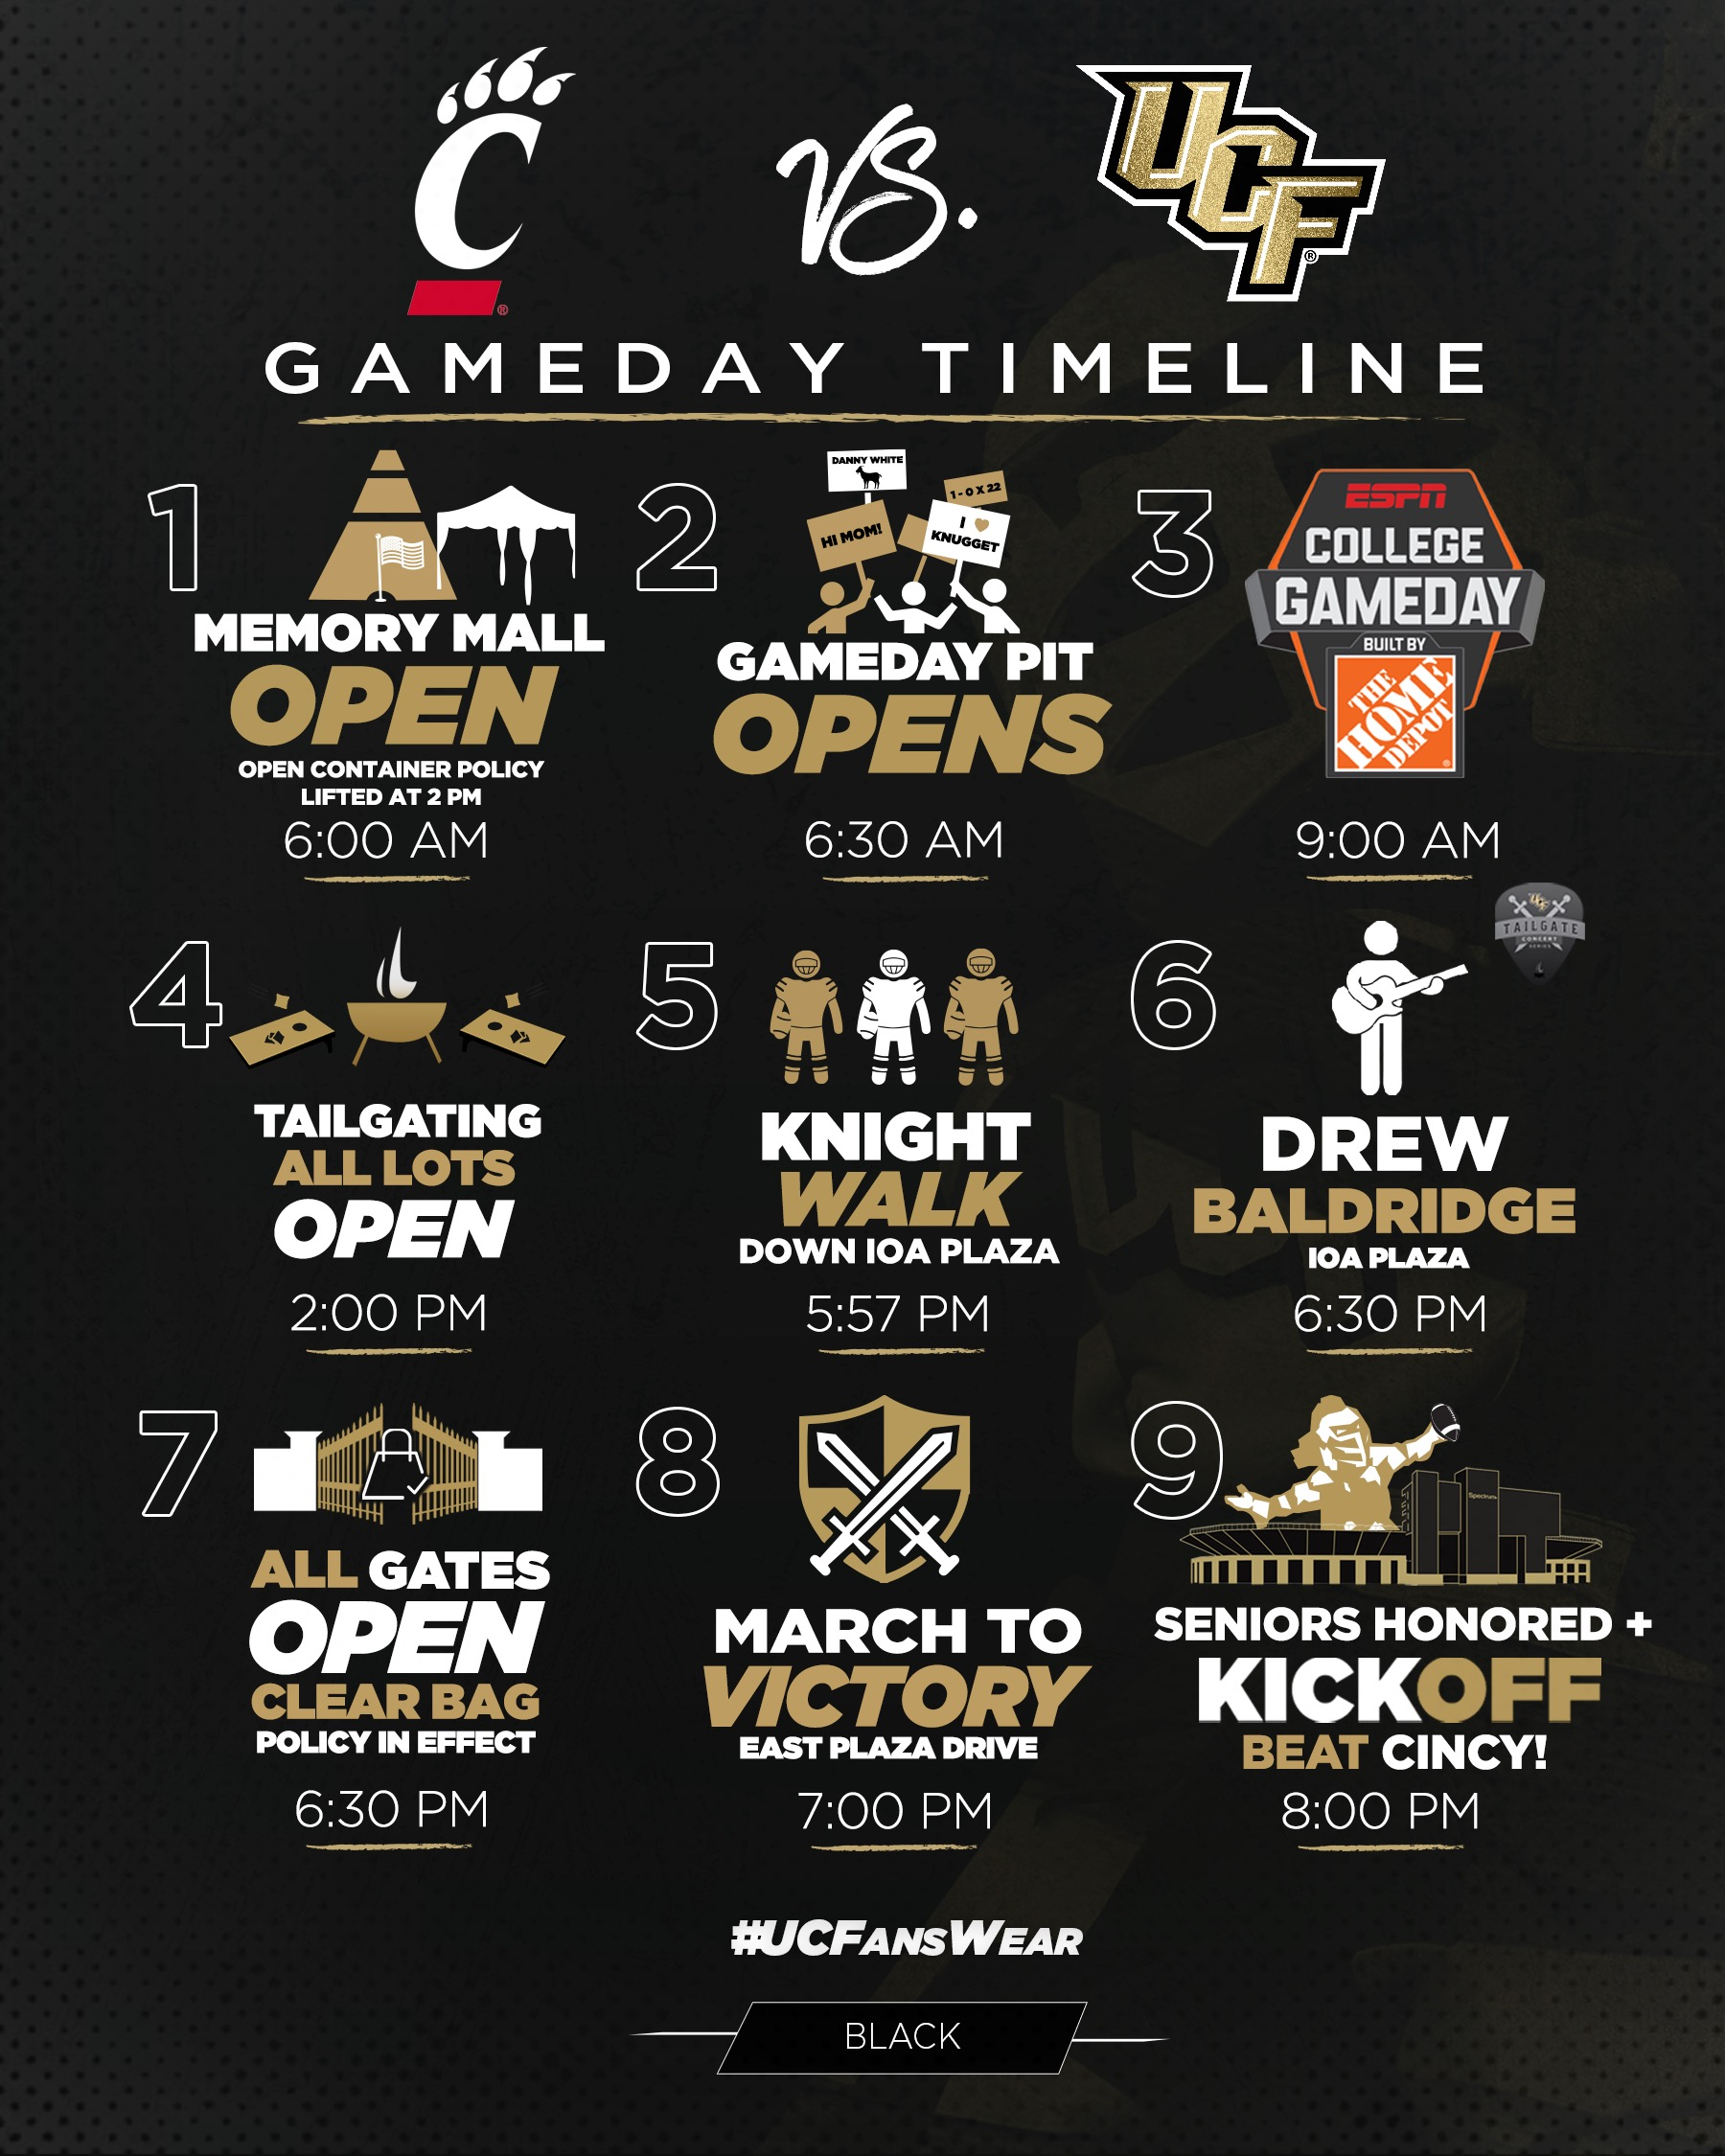 Gameday timeline in graphic form